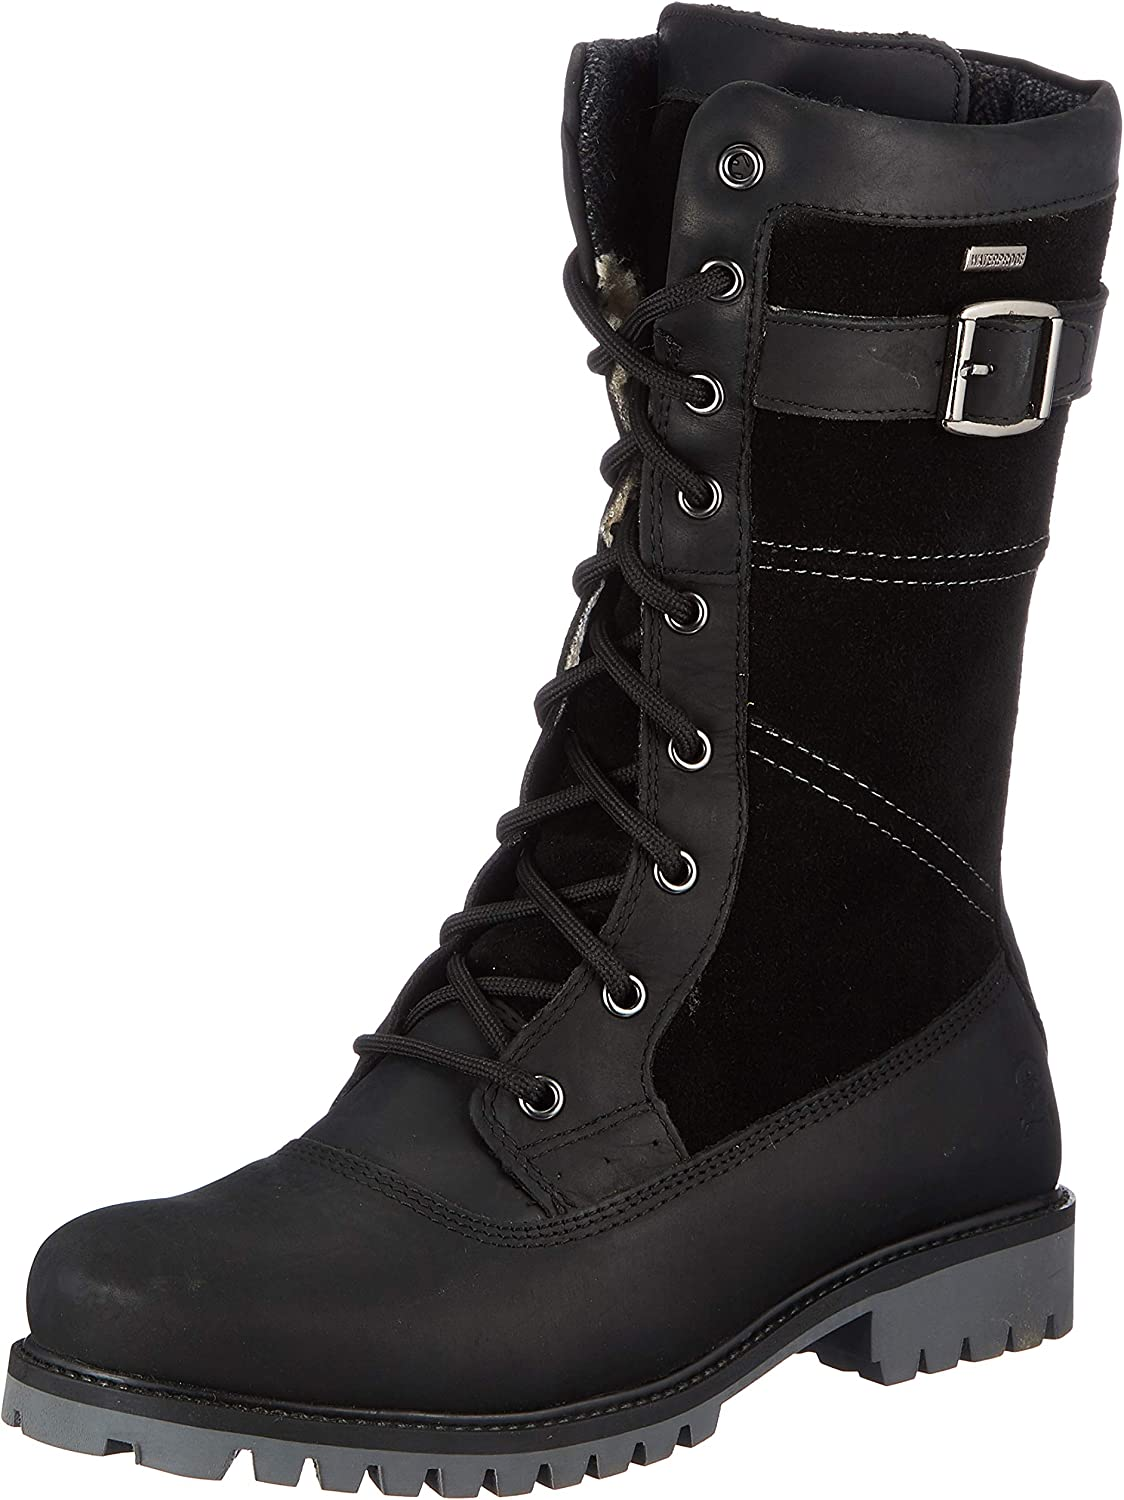 Kamik Luxury Recommended goods Women's Boot Snow